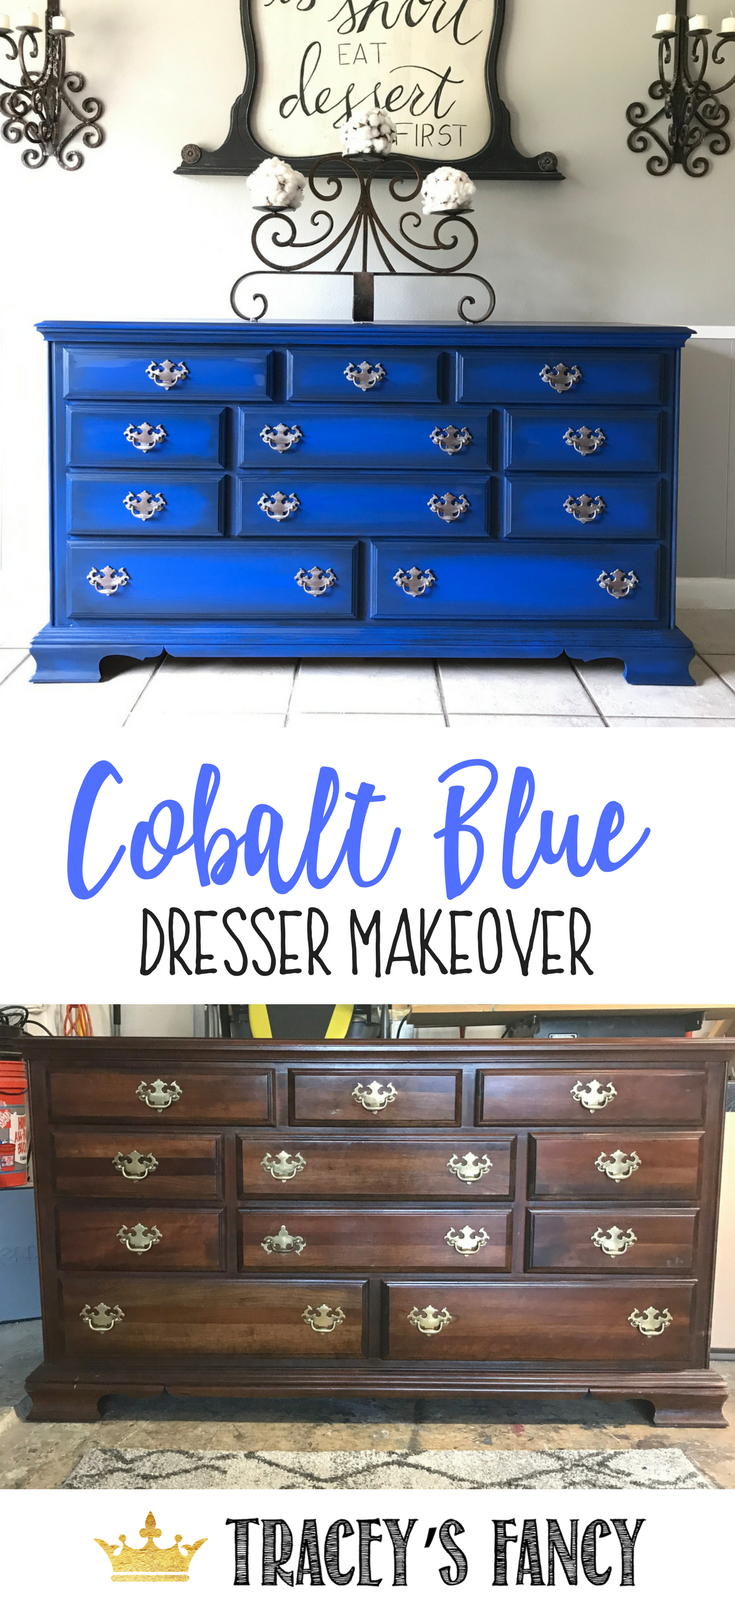 Bright Cobalt Blue Dresser Makeover by Tracey's Fancy with DixieBellePaint #Bluefurniture Blue Painted Furniture #paintcolorblue